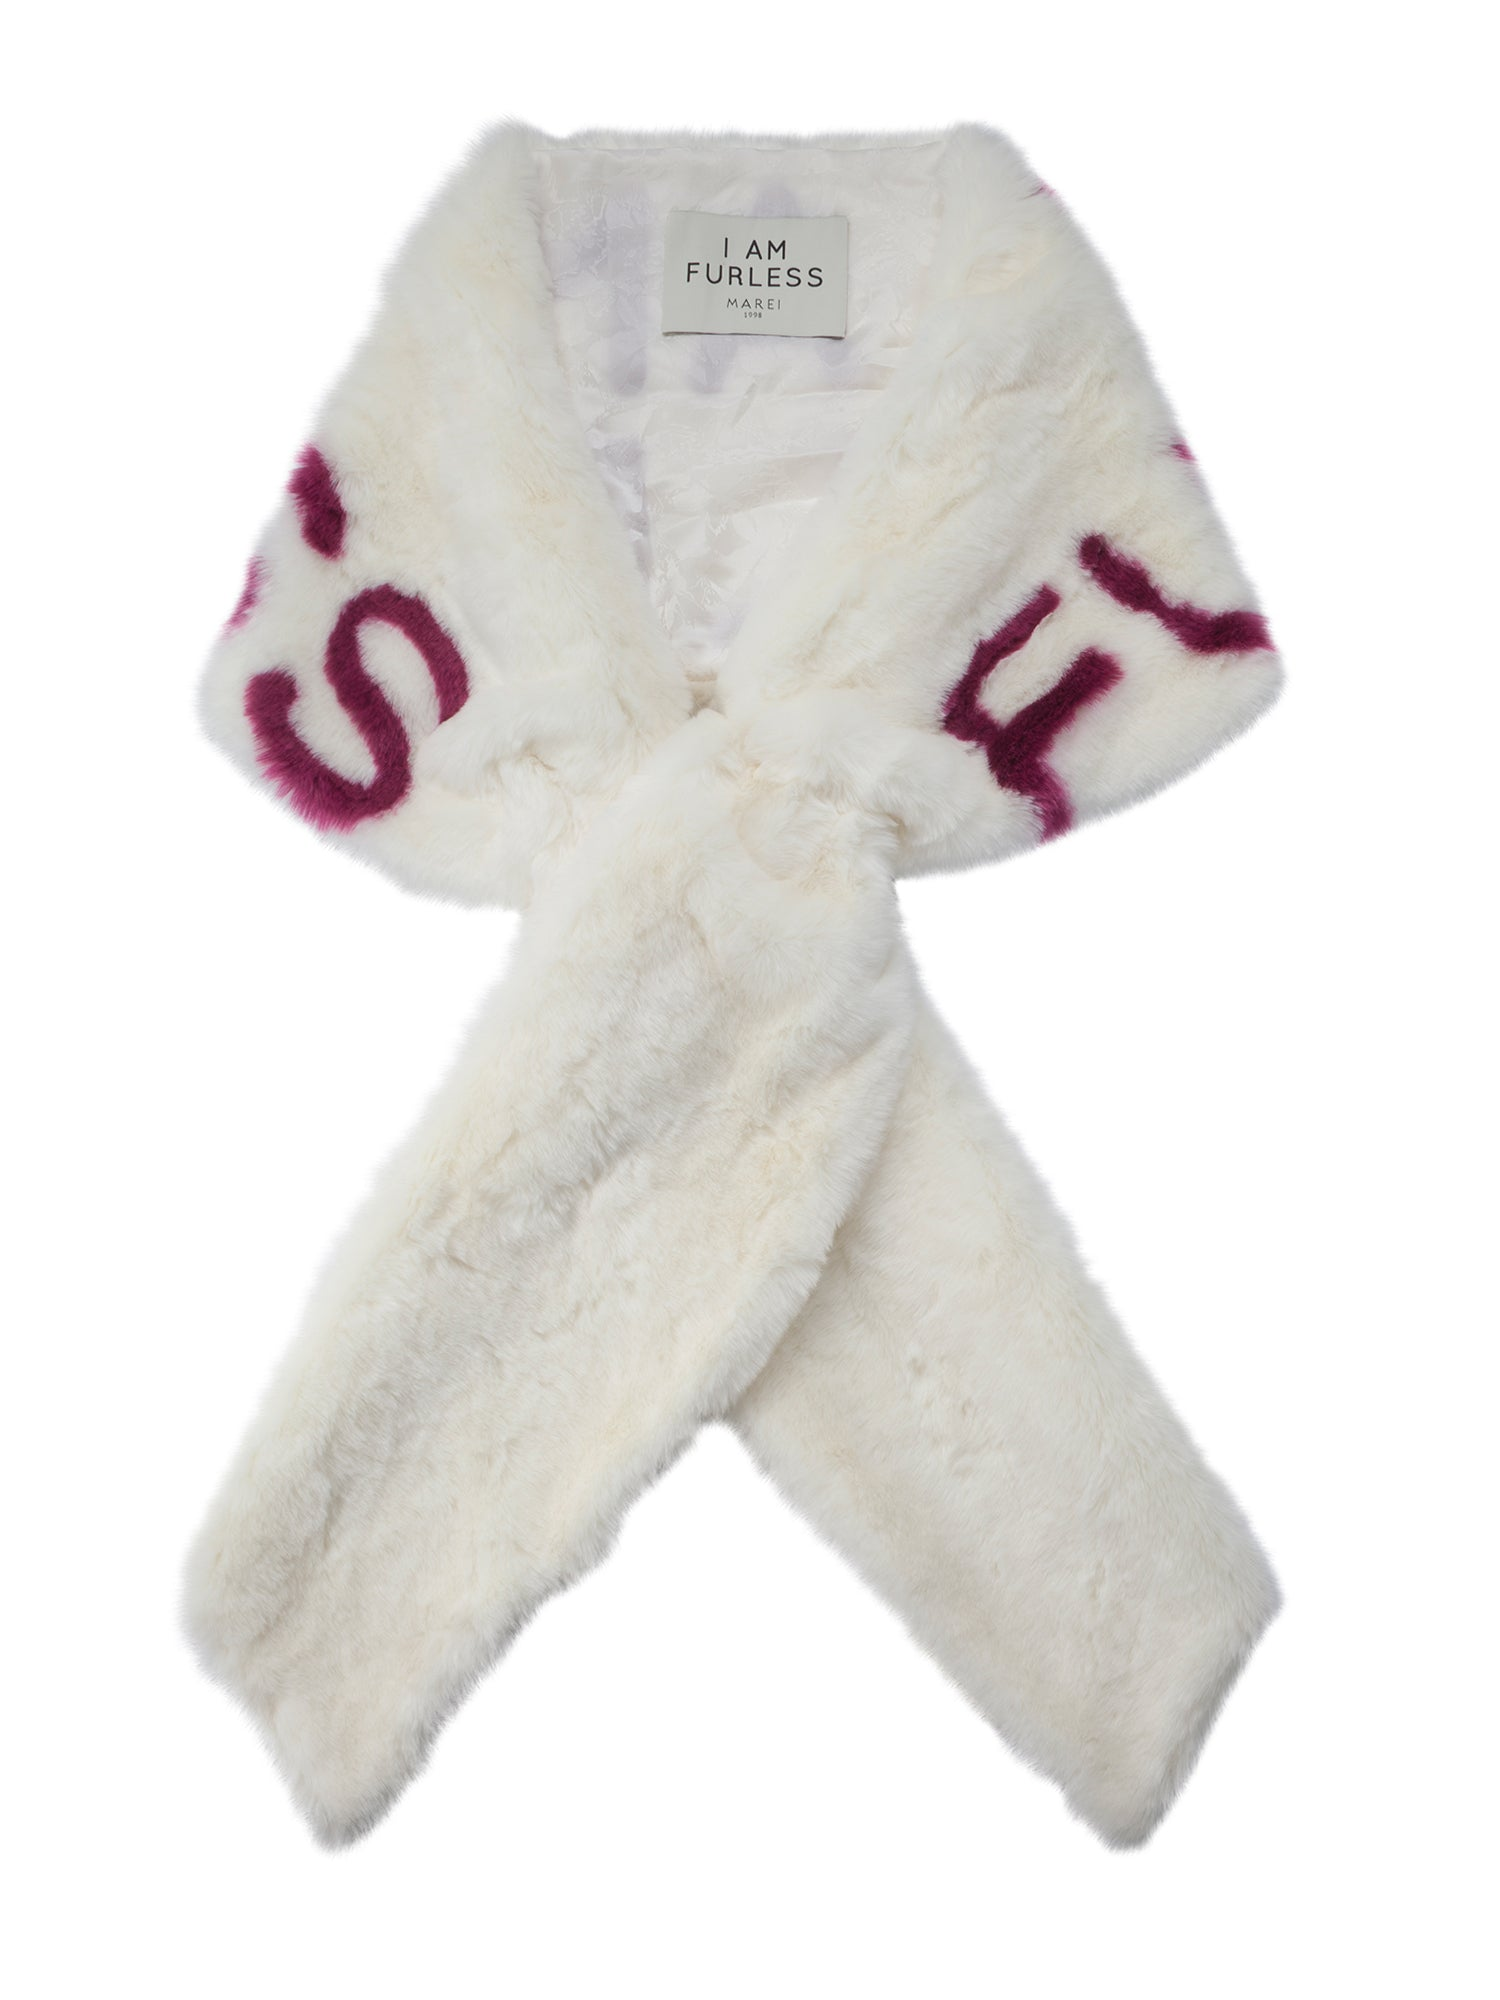 A Packshot Of Marei1998's Furless Faux Fur Stole In White Color. Exclusively Designed As Part Of Marei1998's Furless Label, This Stole Is A Bold Statement Piece. Cut In A Wide Silhouette, It Is Crafted From Plush Faux Fur In White Color, Featuring Jacquard Design In Bold Raspberry..